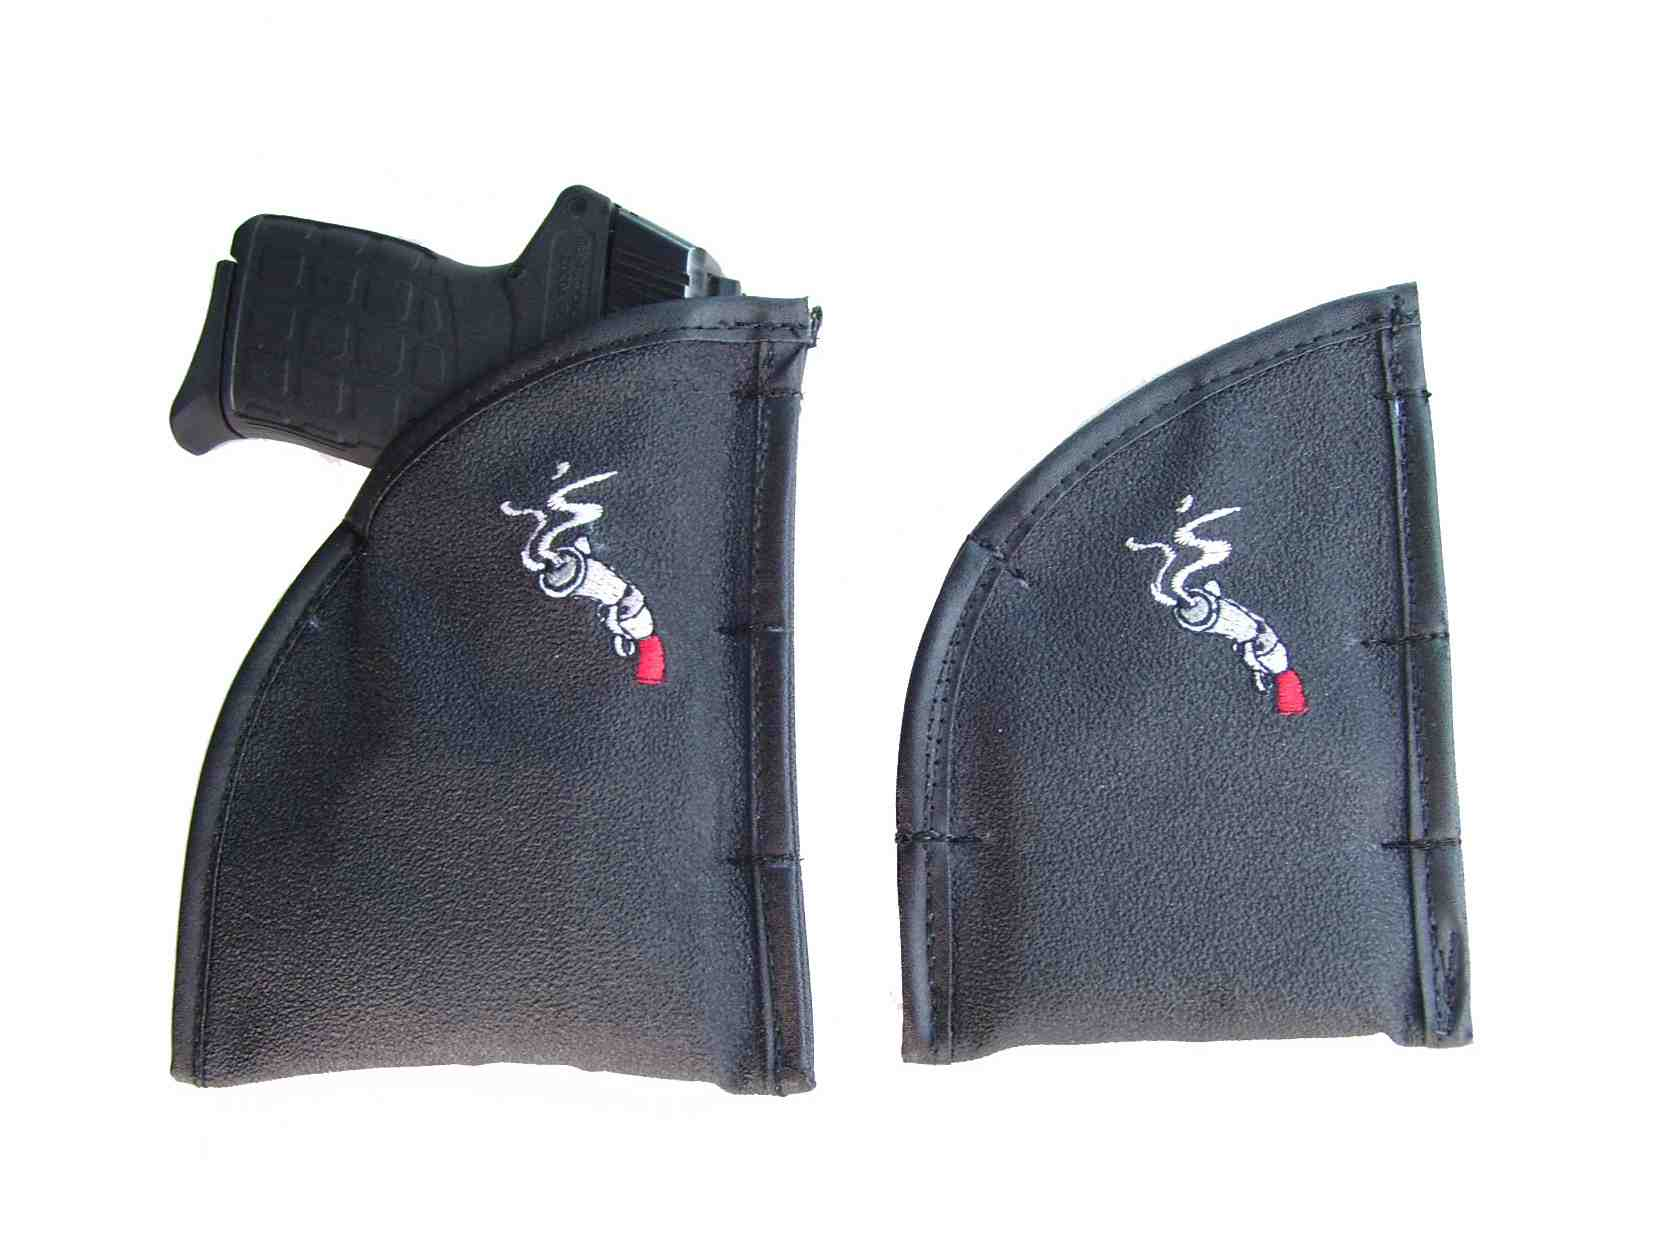 Bullet resistant concealed carry holsters-large-small-pocket-holsters-2.jpg